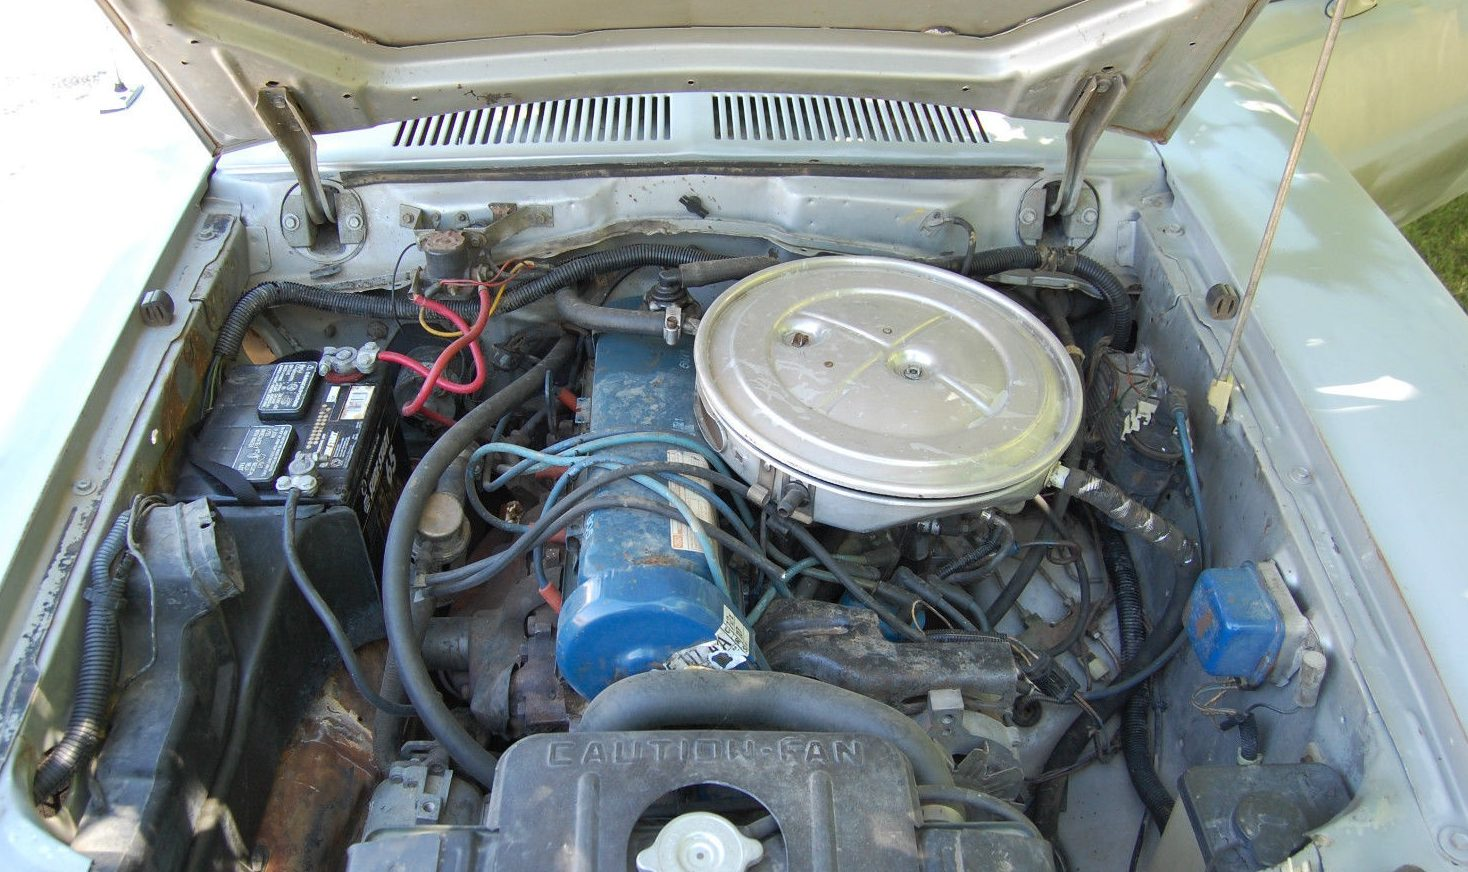 Ford Pinto 2 3 Engine Diagram - Wiring Diagram Database on 5.0 mustang wiring harness, crown victoria wiring harness, 73 mustang wiring harness,